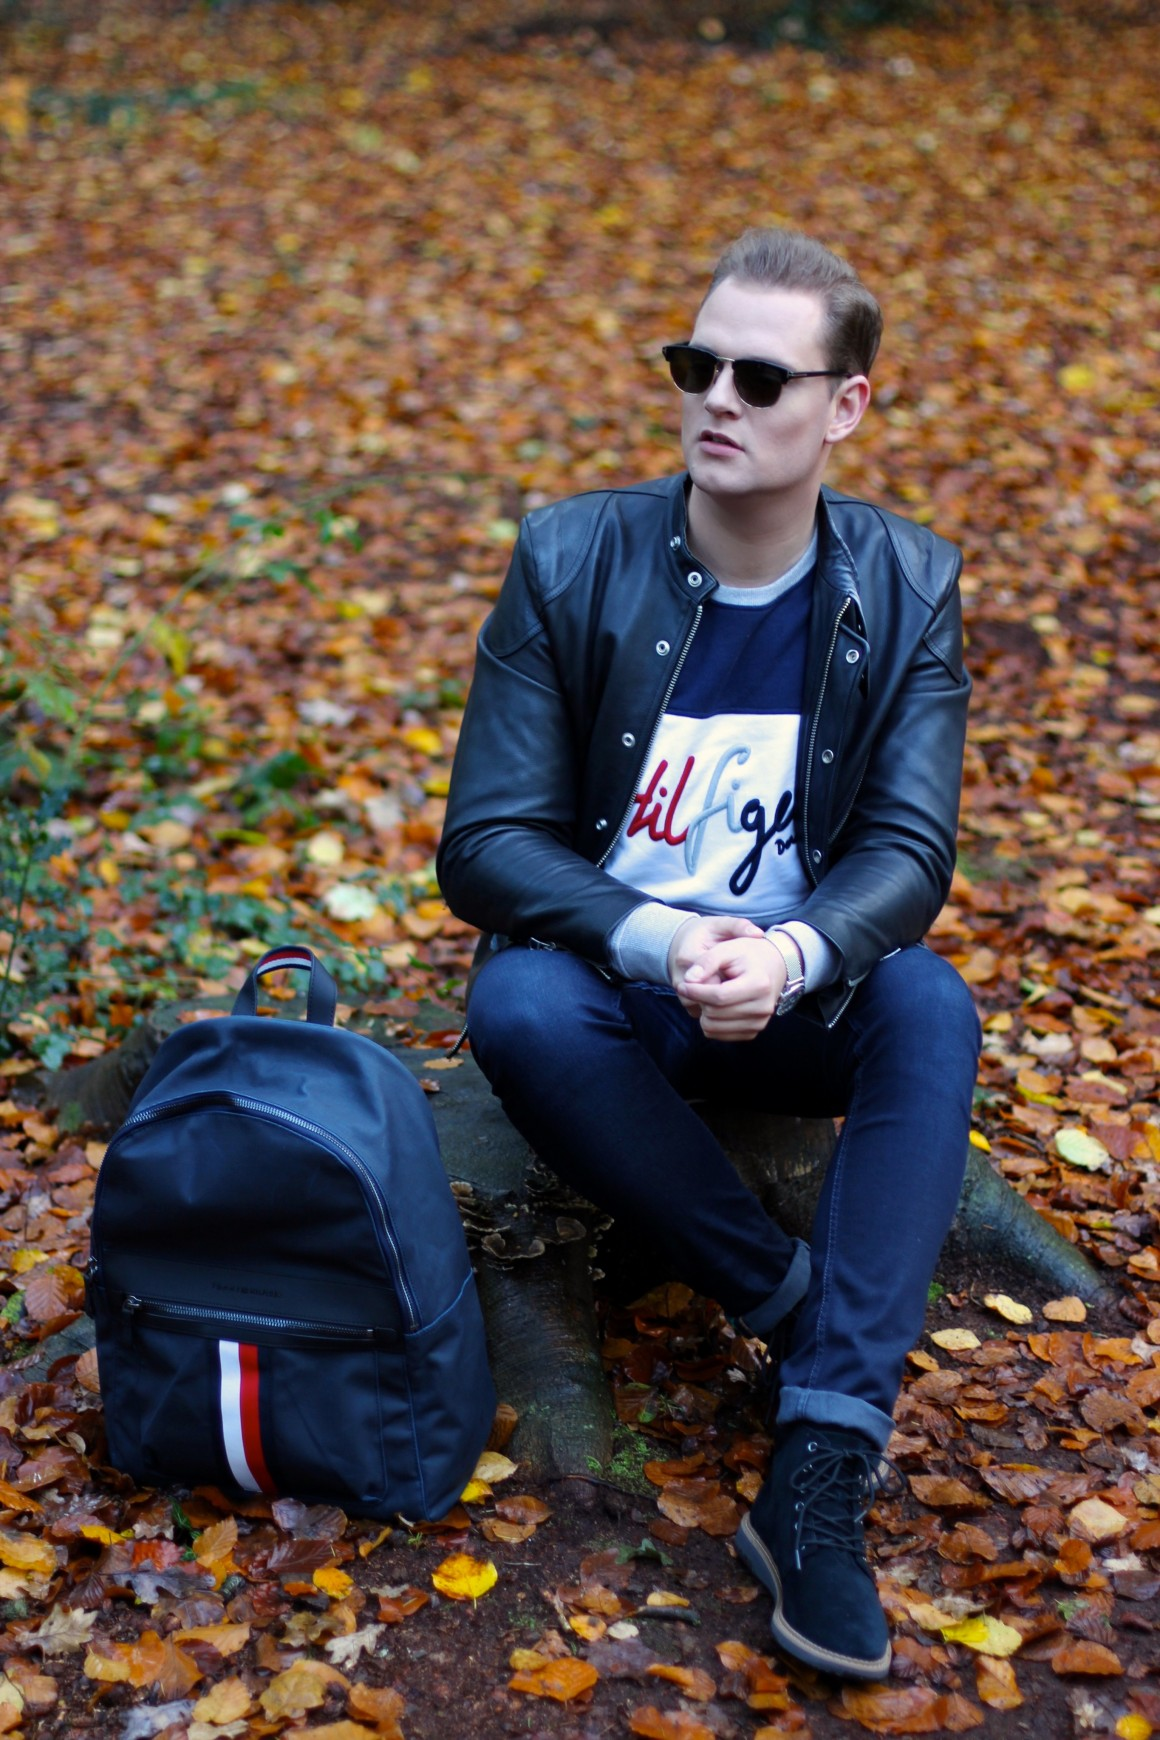 Hilfiger in the Woods JustKVN menswear and lifestyle blog